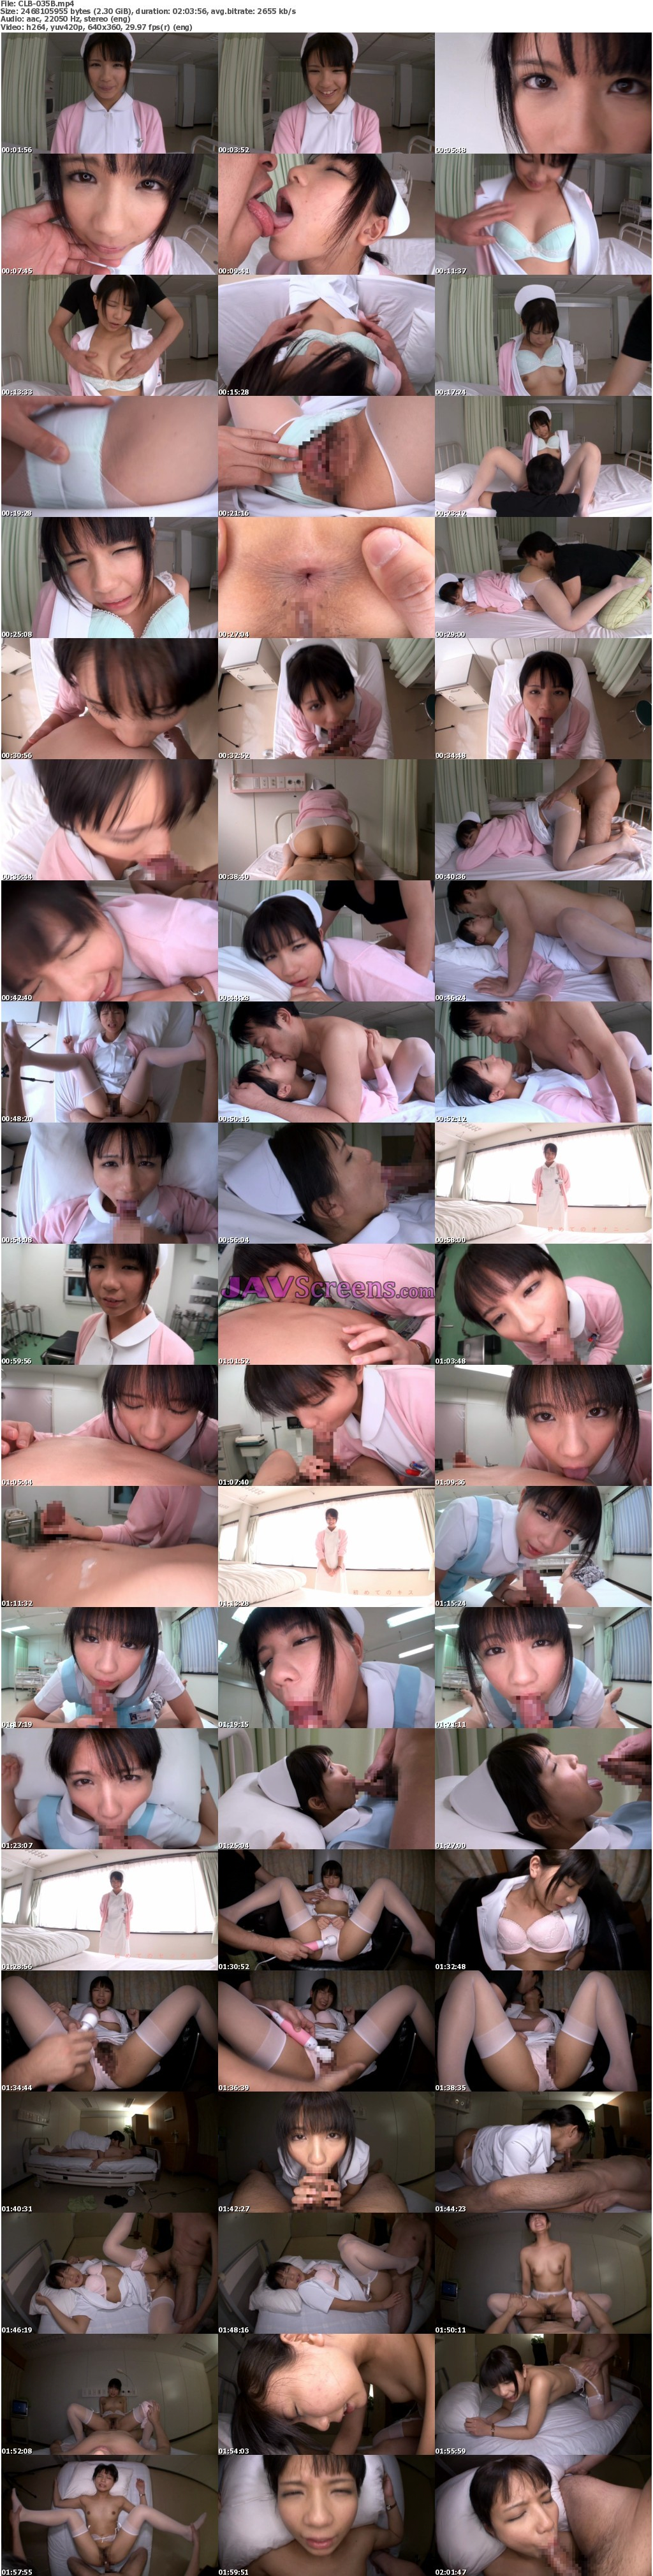 CLB-035B.jpg - JAV Screenshot